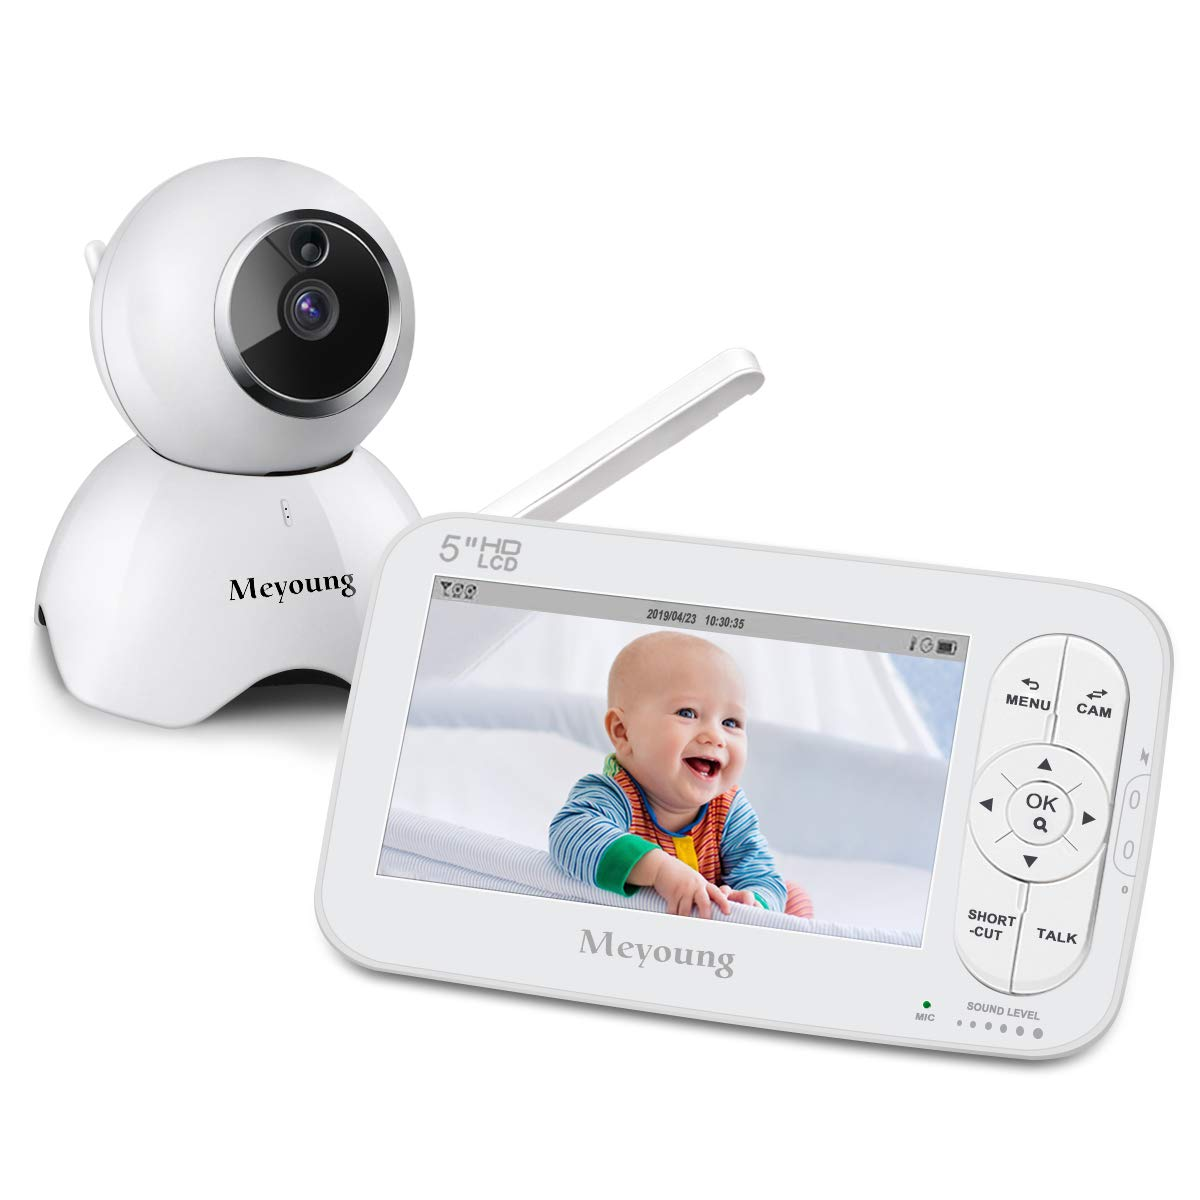 Baby Monitor - Meyoung 5 Inch 720P HD Video Baby Monitor with Camera and Audio, Night Vision, Two-Way Talk, Temperature Monitor, Sound Detection, Five Lullabies, Range Up to 900ftfor Baby Infant Kids